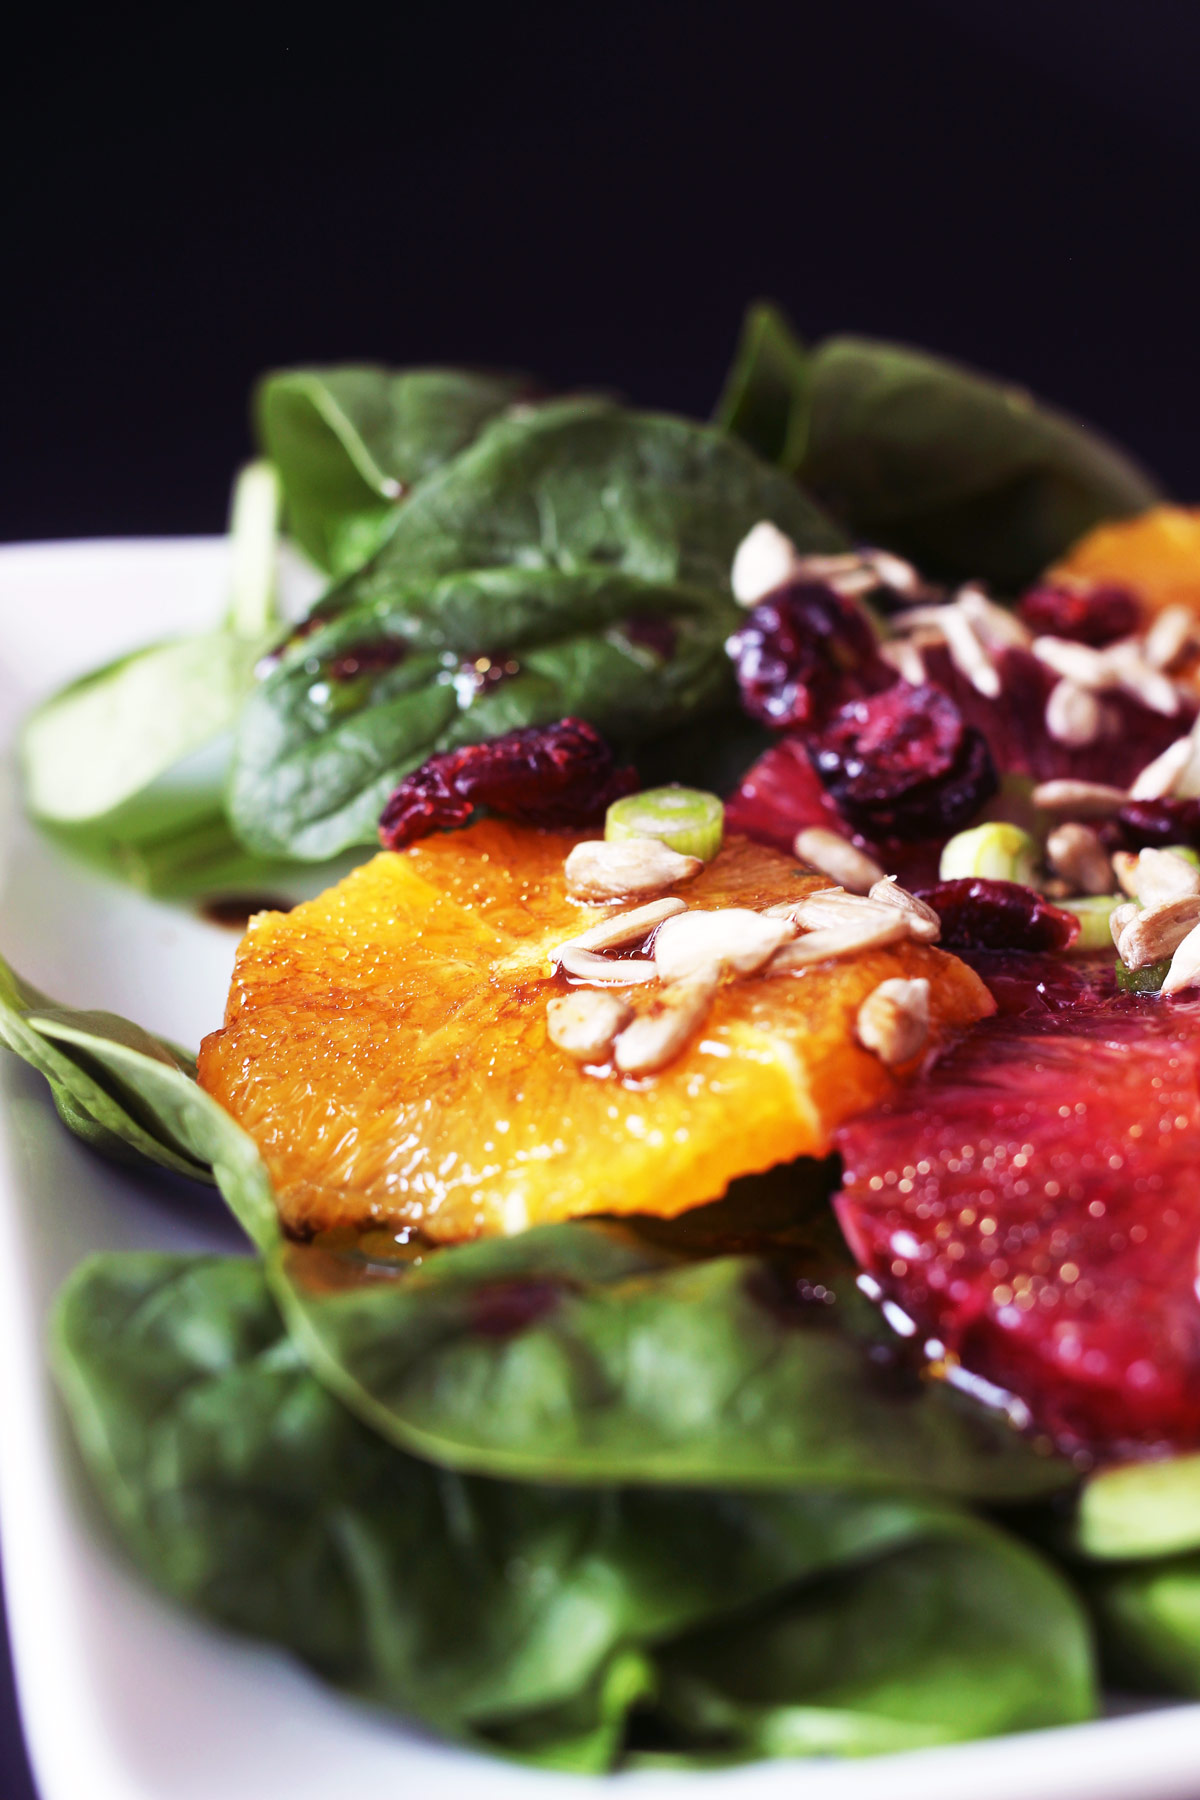 close-up of oranges on spinach salad